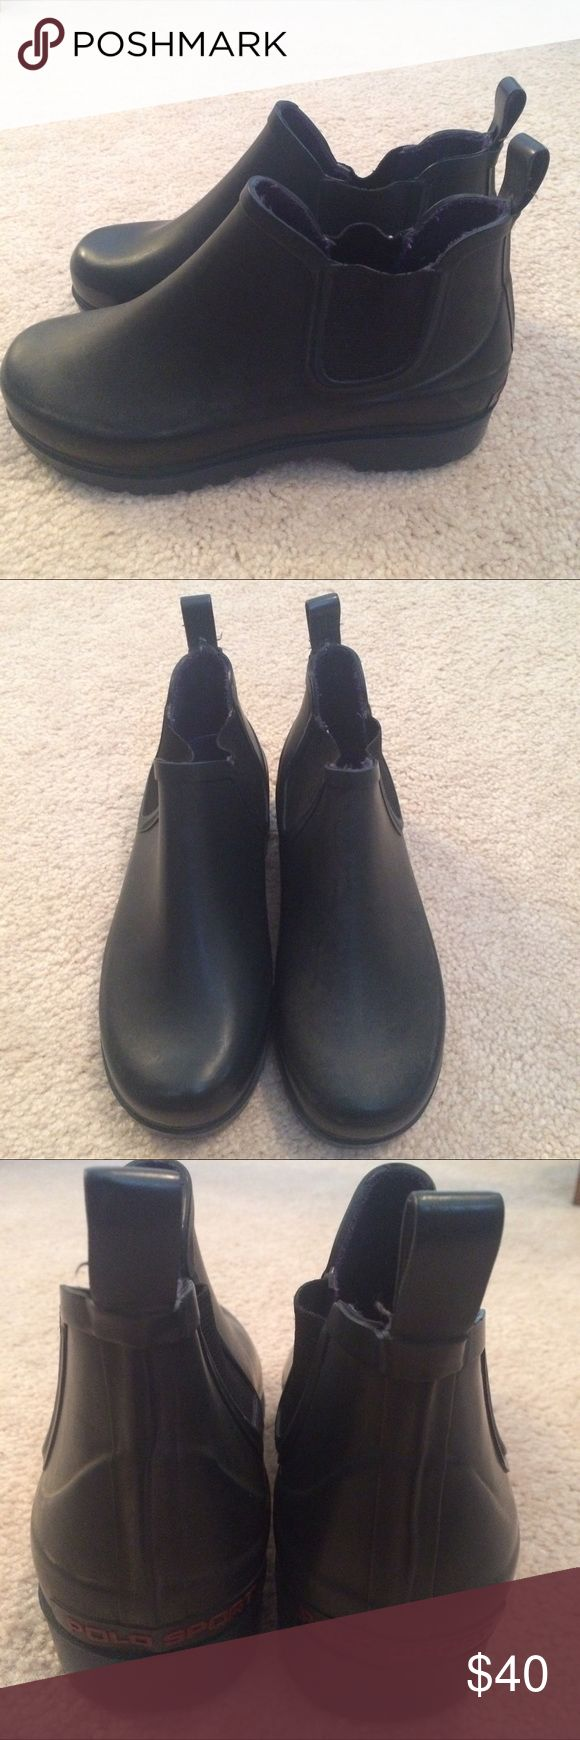 Polo Sport Rain Wellies Size mens 8. Minor wear. Great condition. Dark Navy Blue almost black color. Polo by Ralph Lauren Shoes Rain & Snow Boots